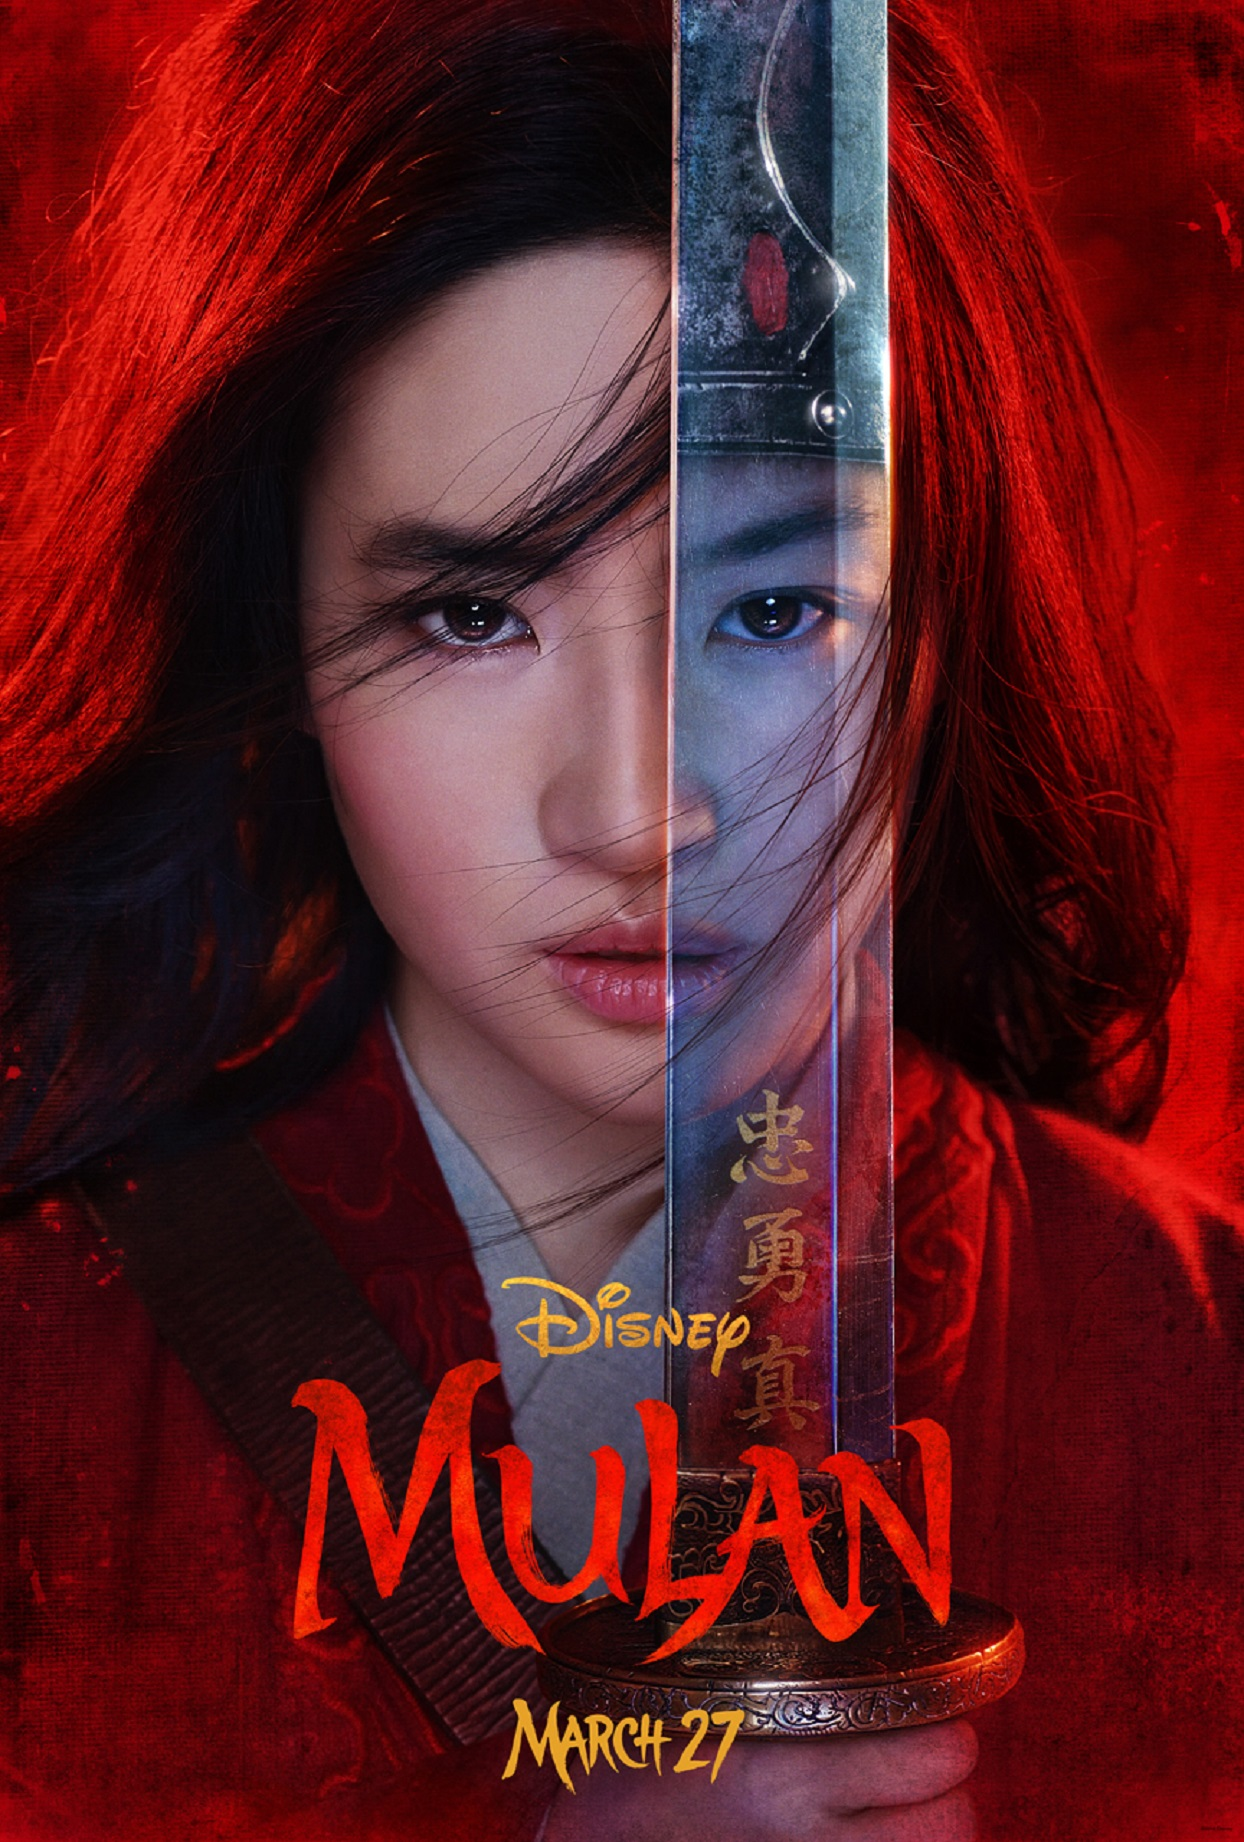 The First Mulan Trailer Is Here! See Actress Liu Yifei in Disney's Live-Action Remake